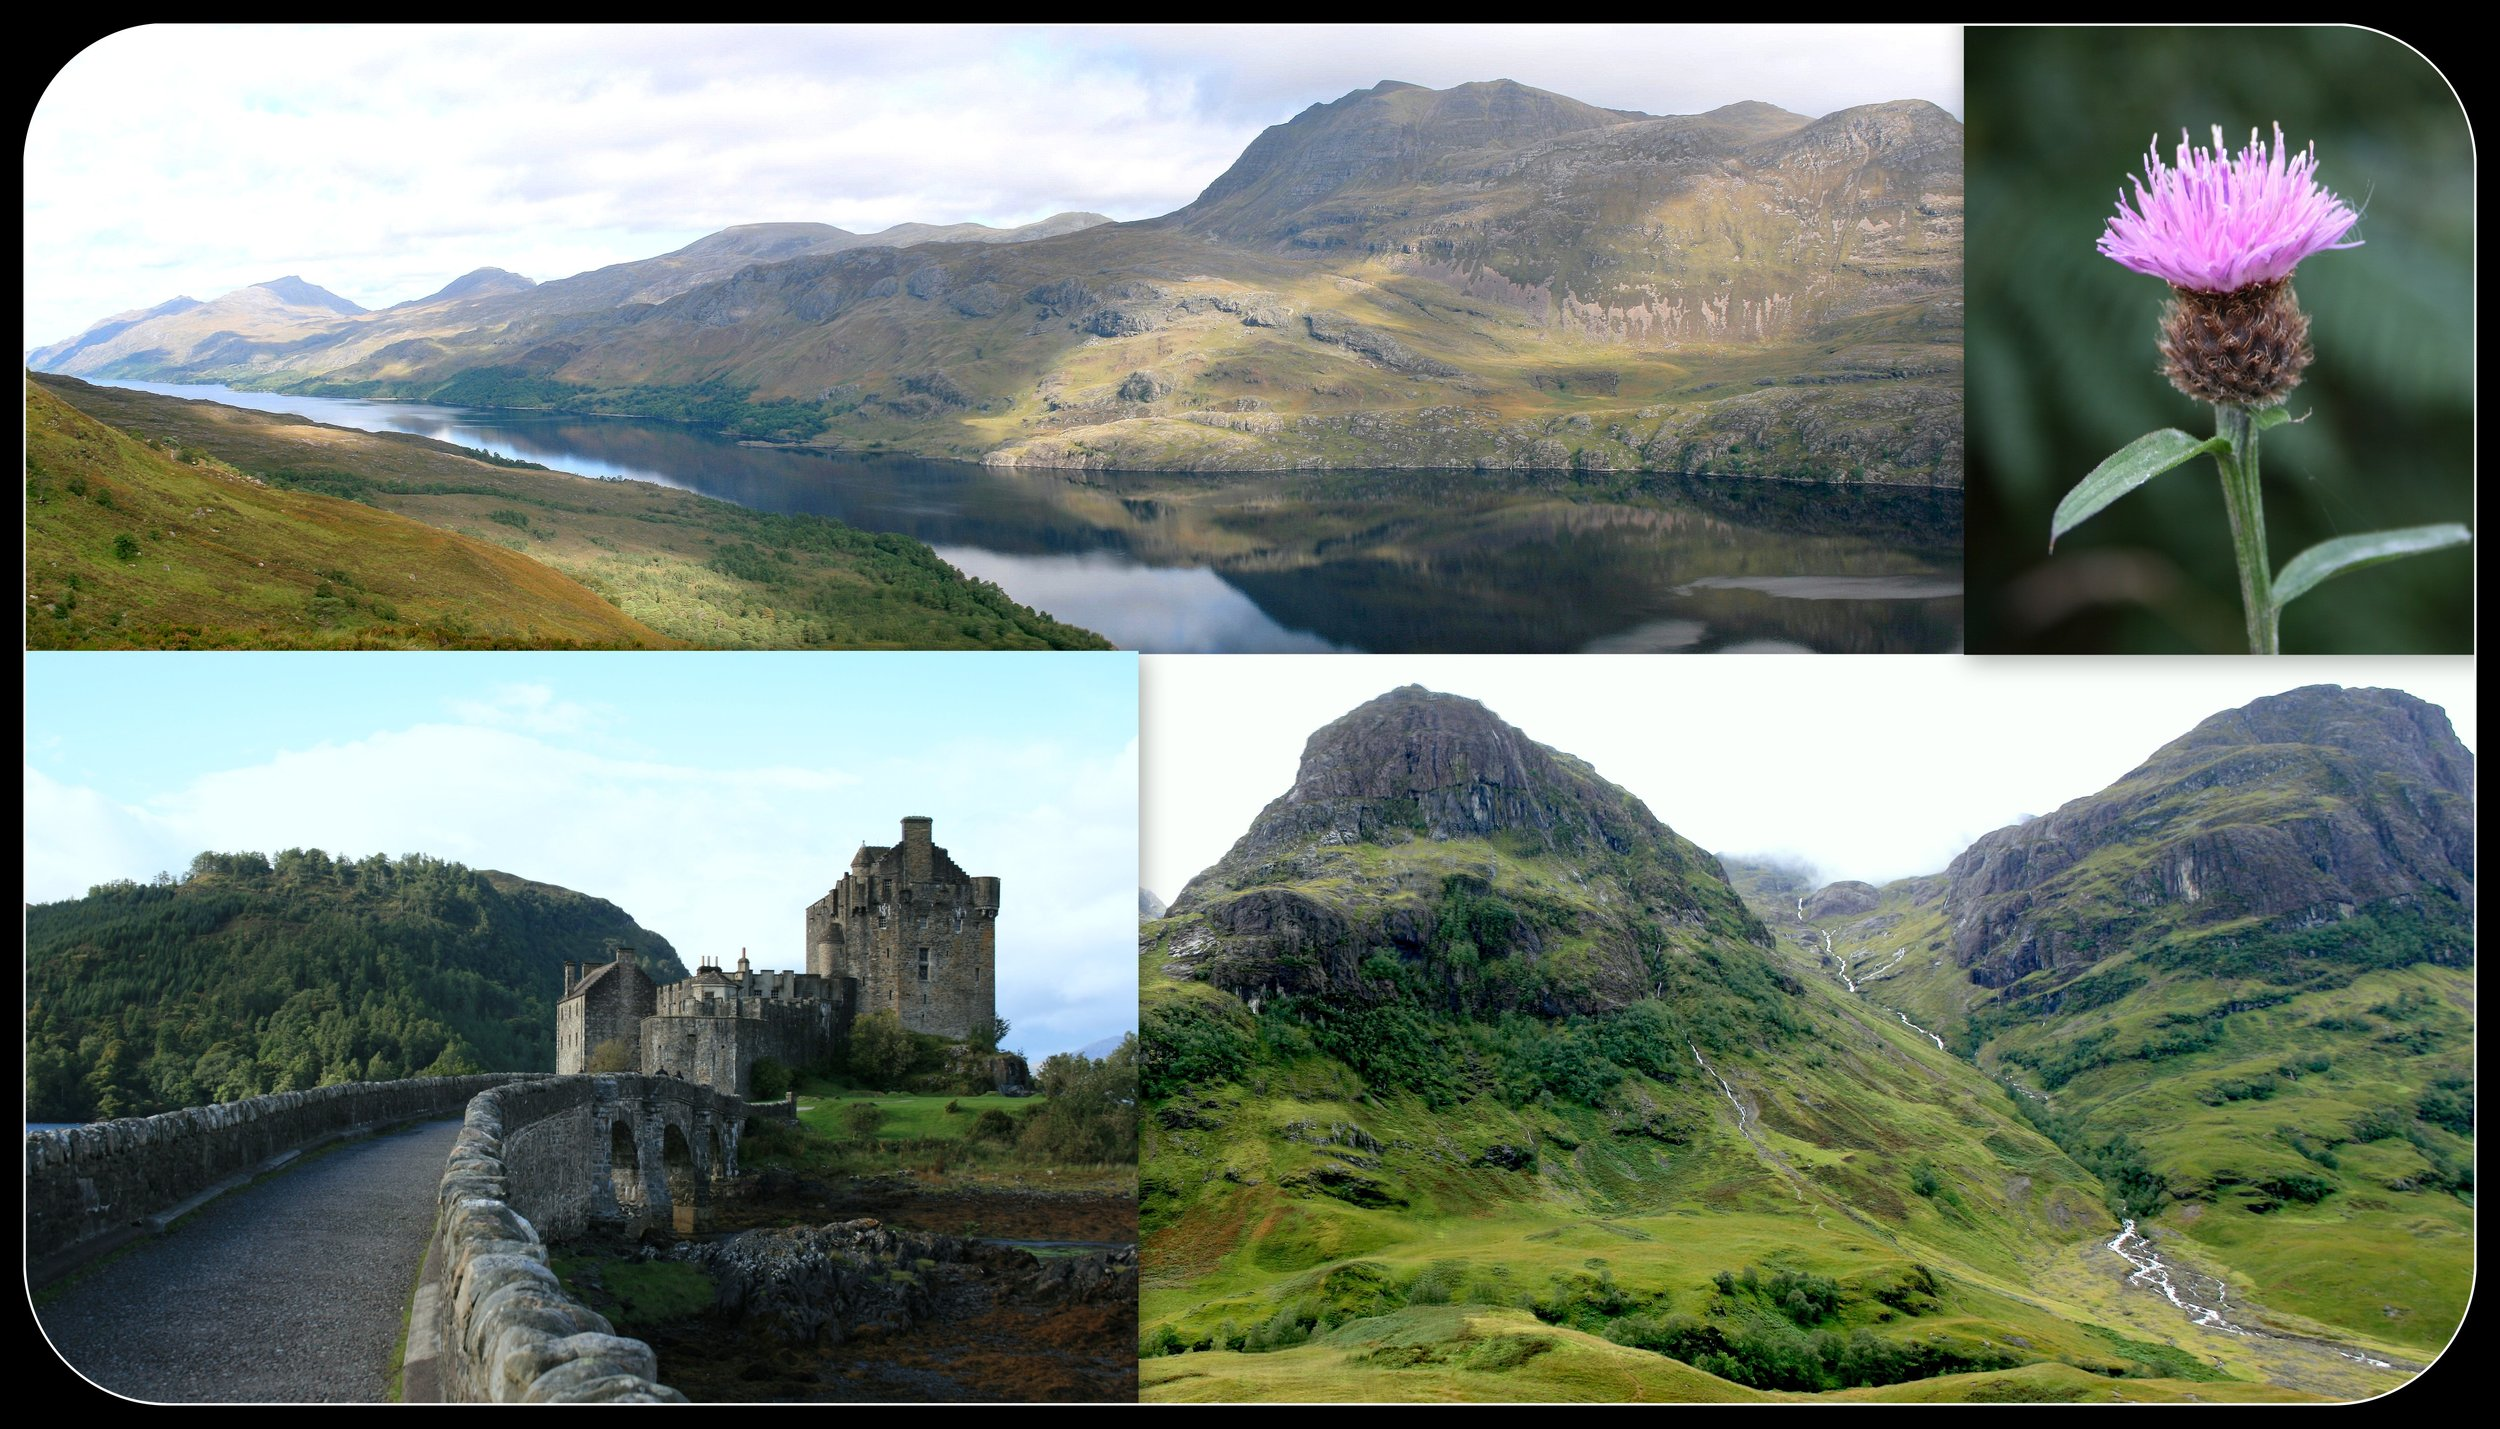 Slioch (a view from a hike up Ben Eighe), a thistle, Eilean Donan Castle, and Glencoe.